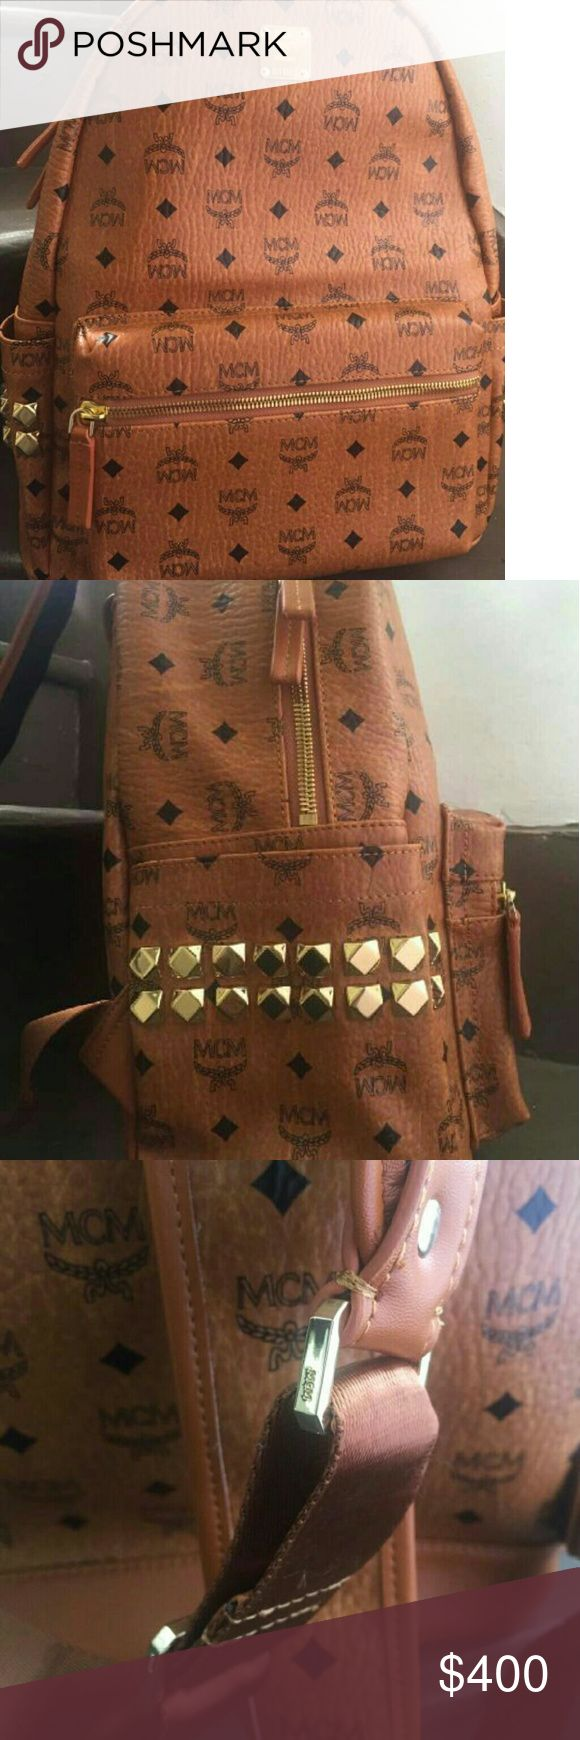 MCM Backpack New MCM Backpack Medium size,comes with authenticity card.Price is in the lowest range,so please be reasonable in throwing offers thank you.😊😊😉 MCM Bags Backpacks